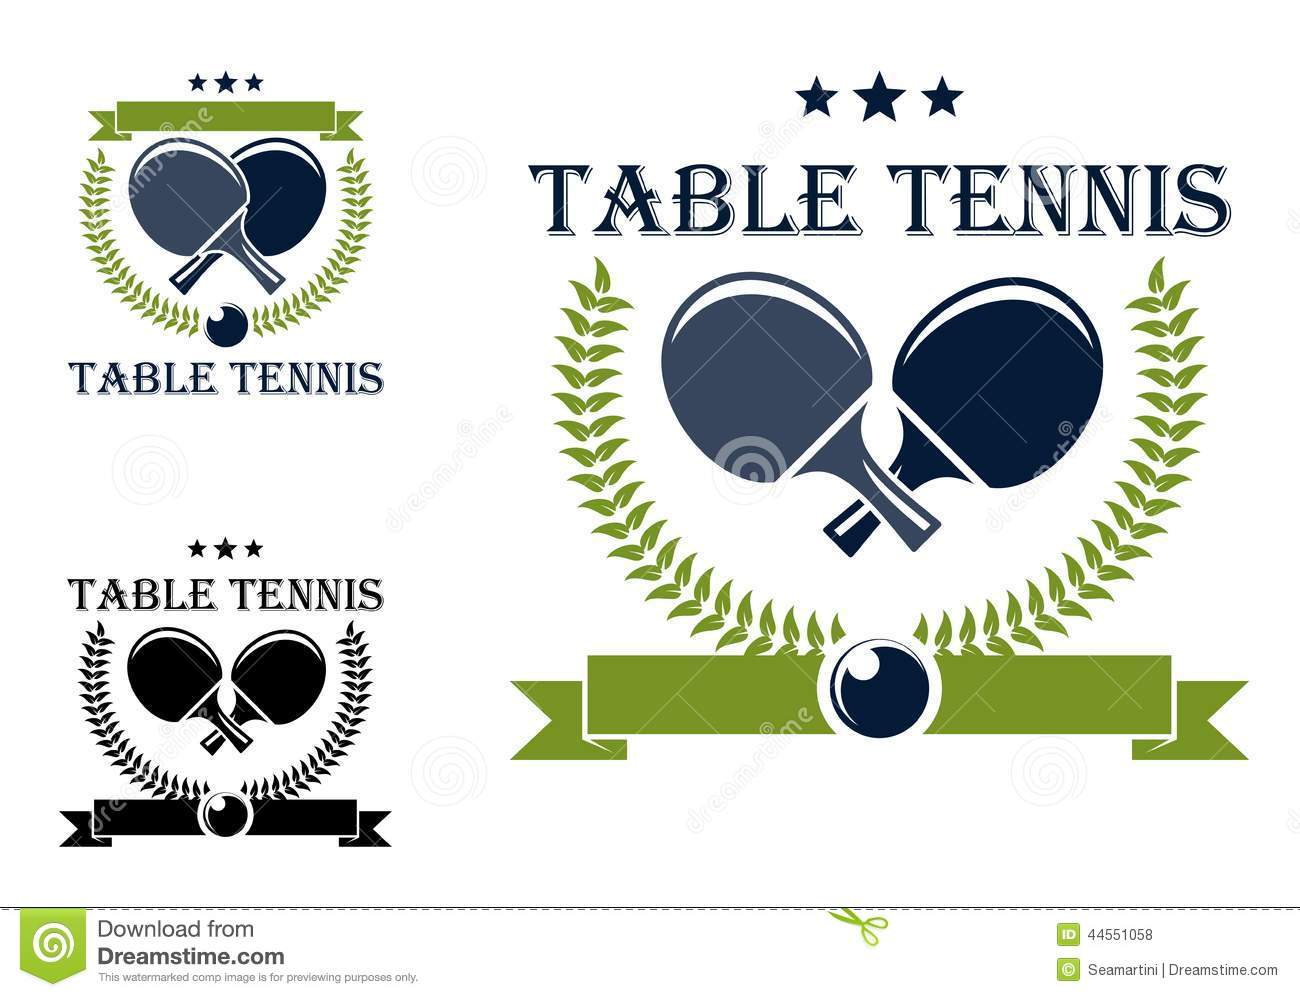 Table tennis or...